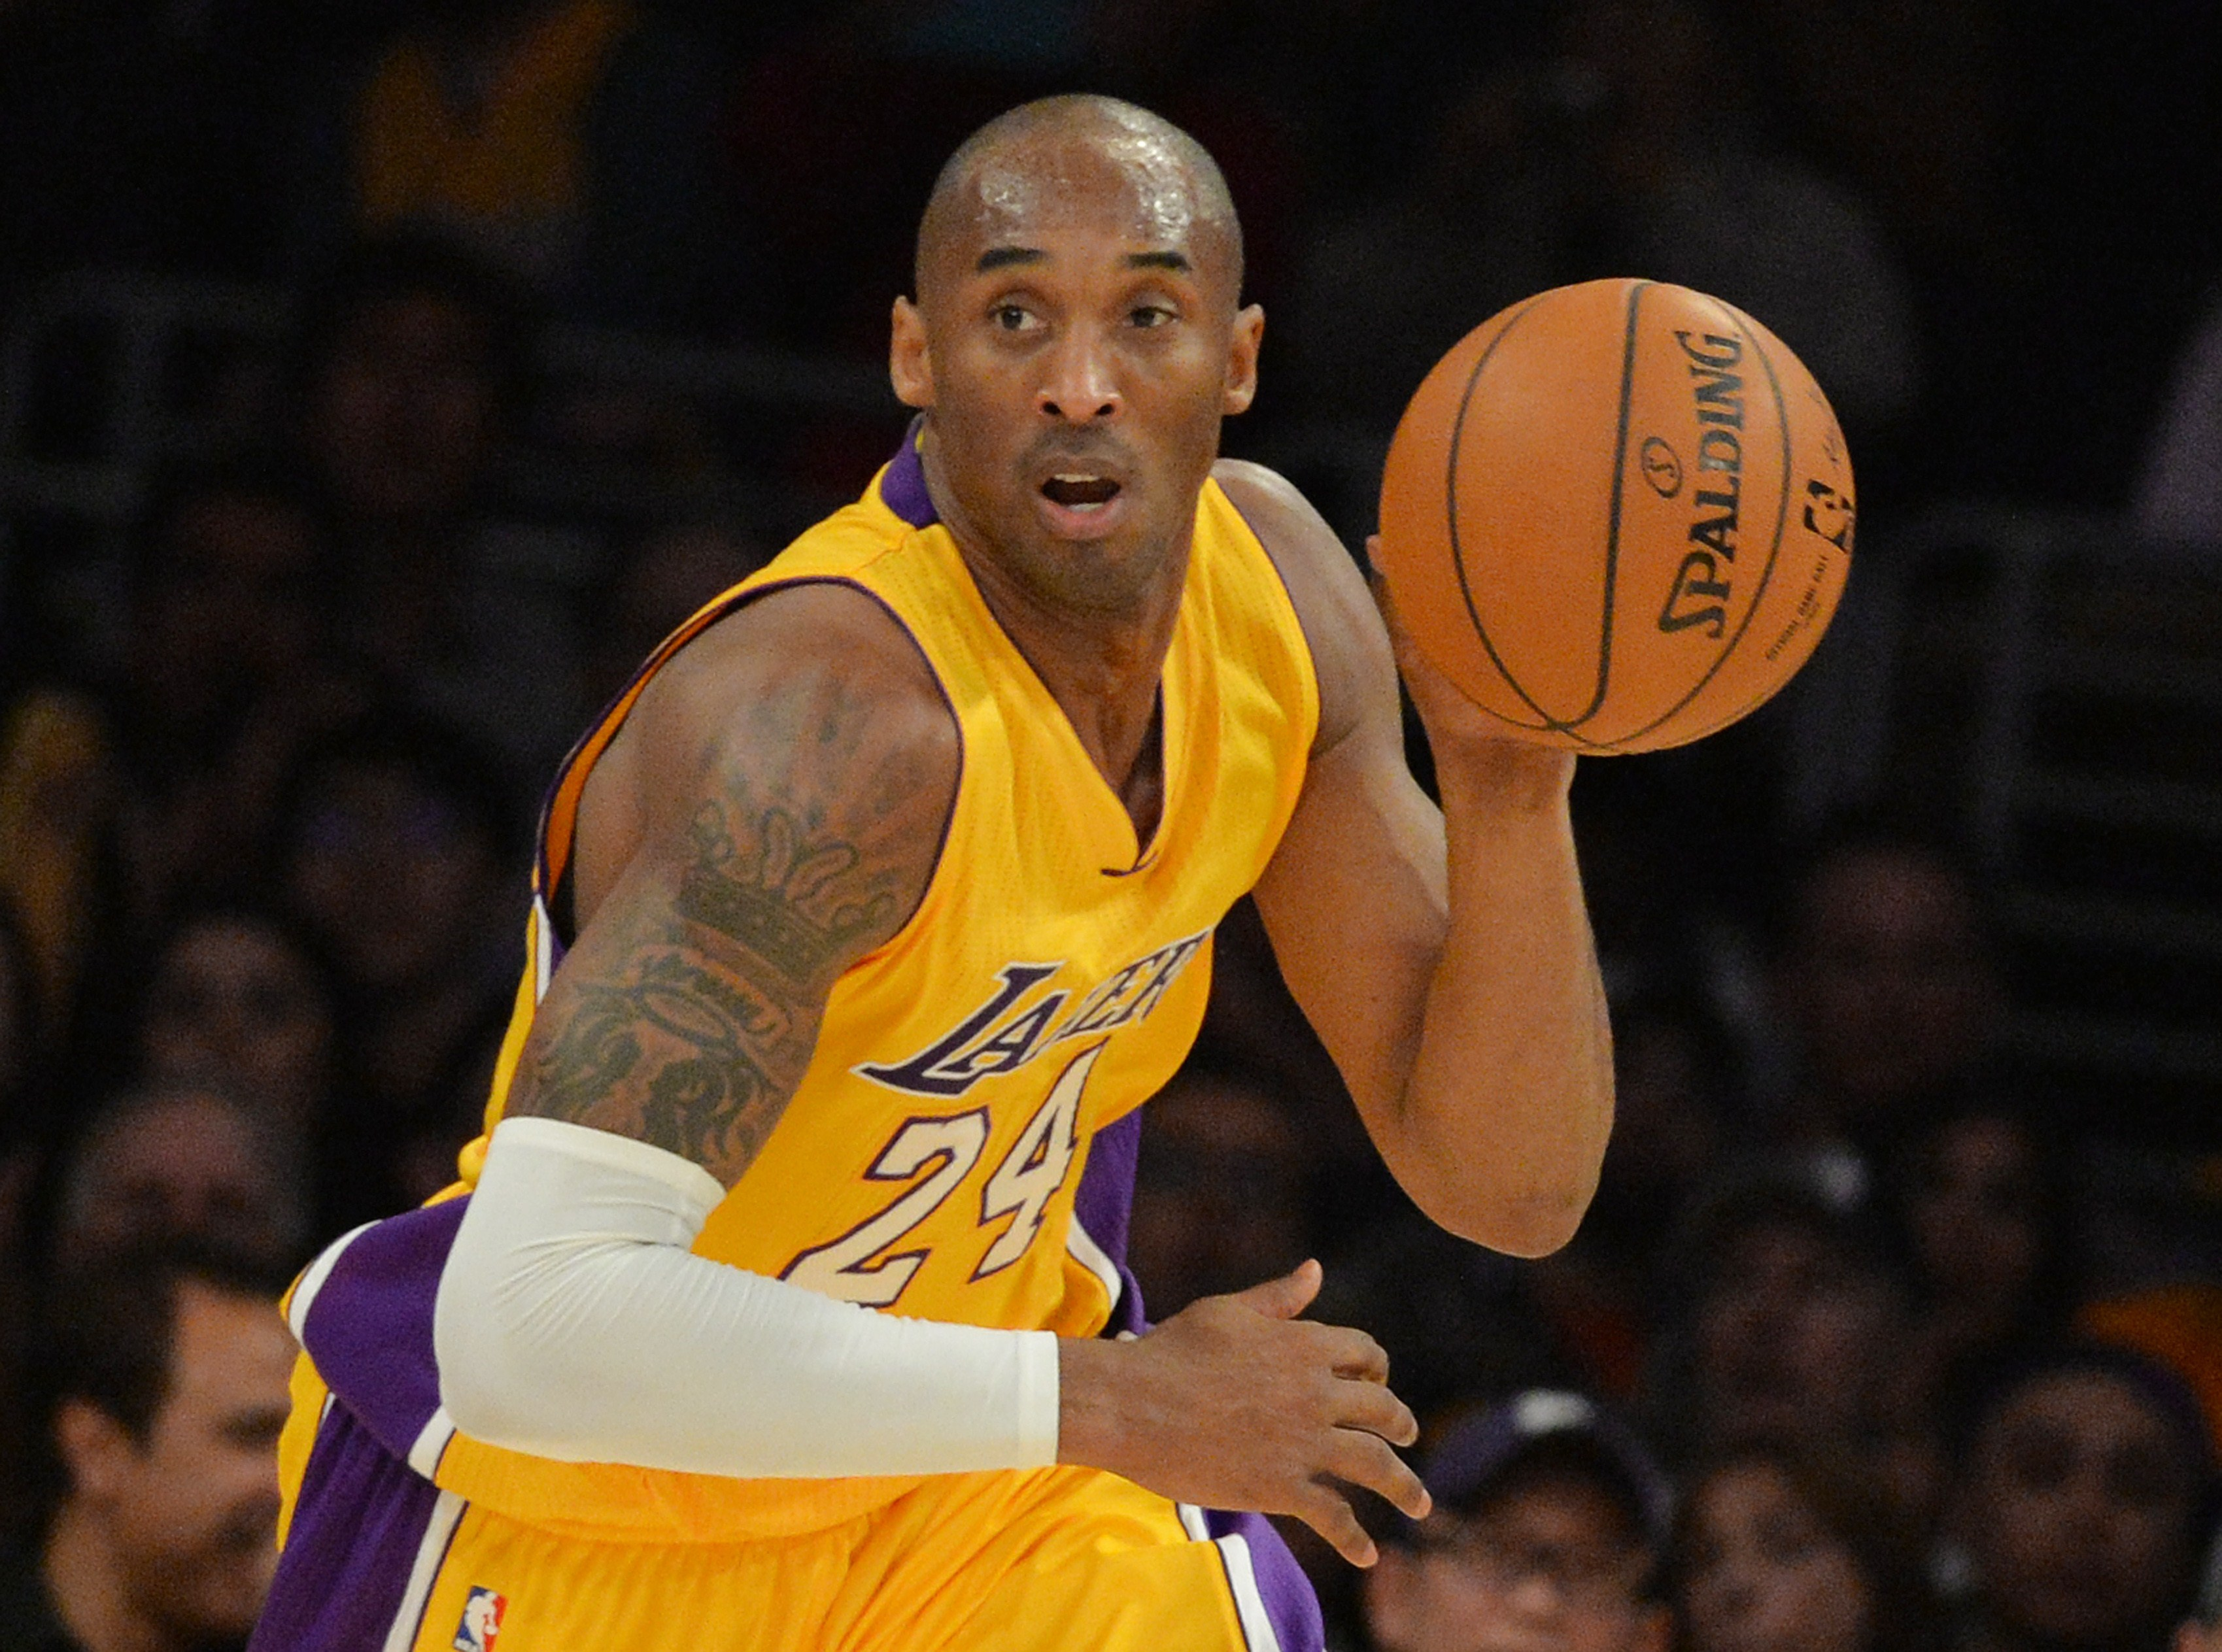 Kobe Bean Bryant - 24 facts about amazing Kobe Bryant - Pictures - CBS News